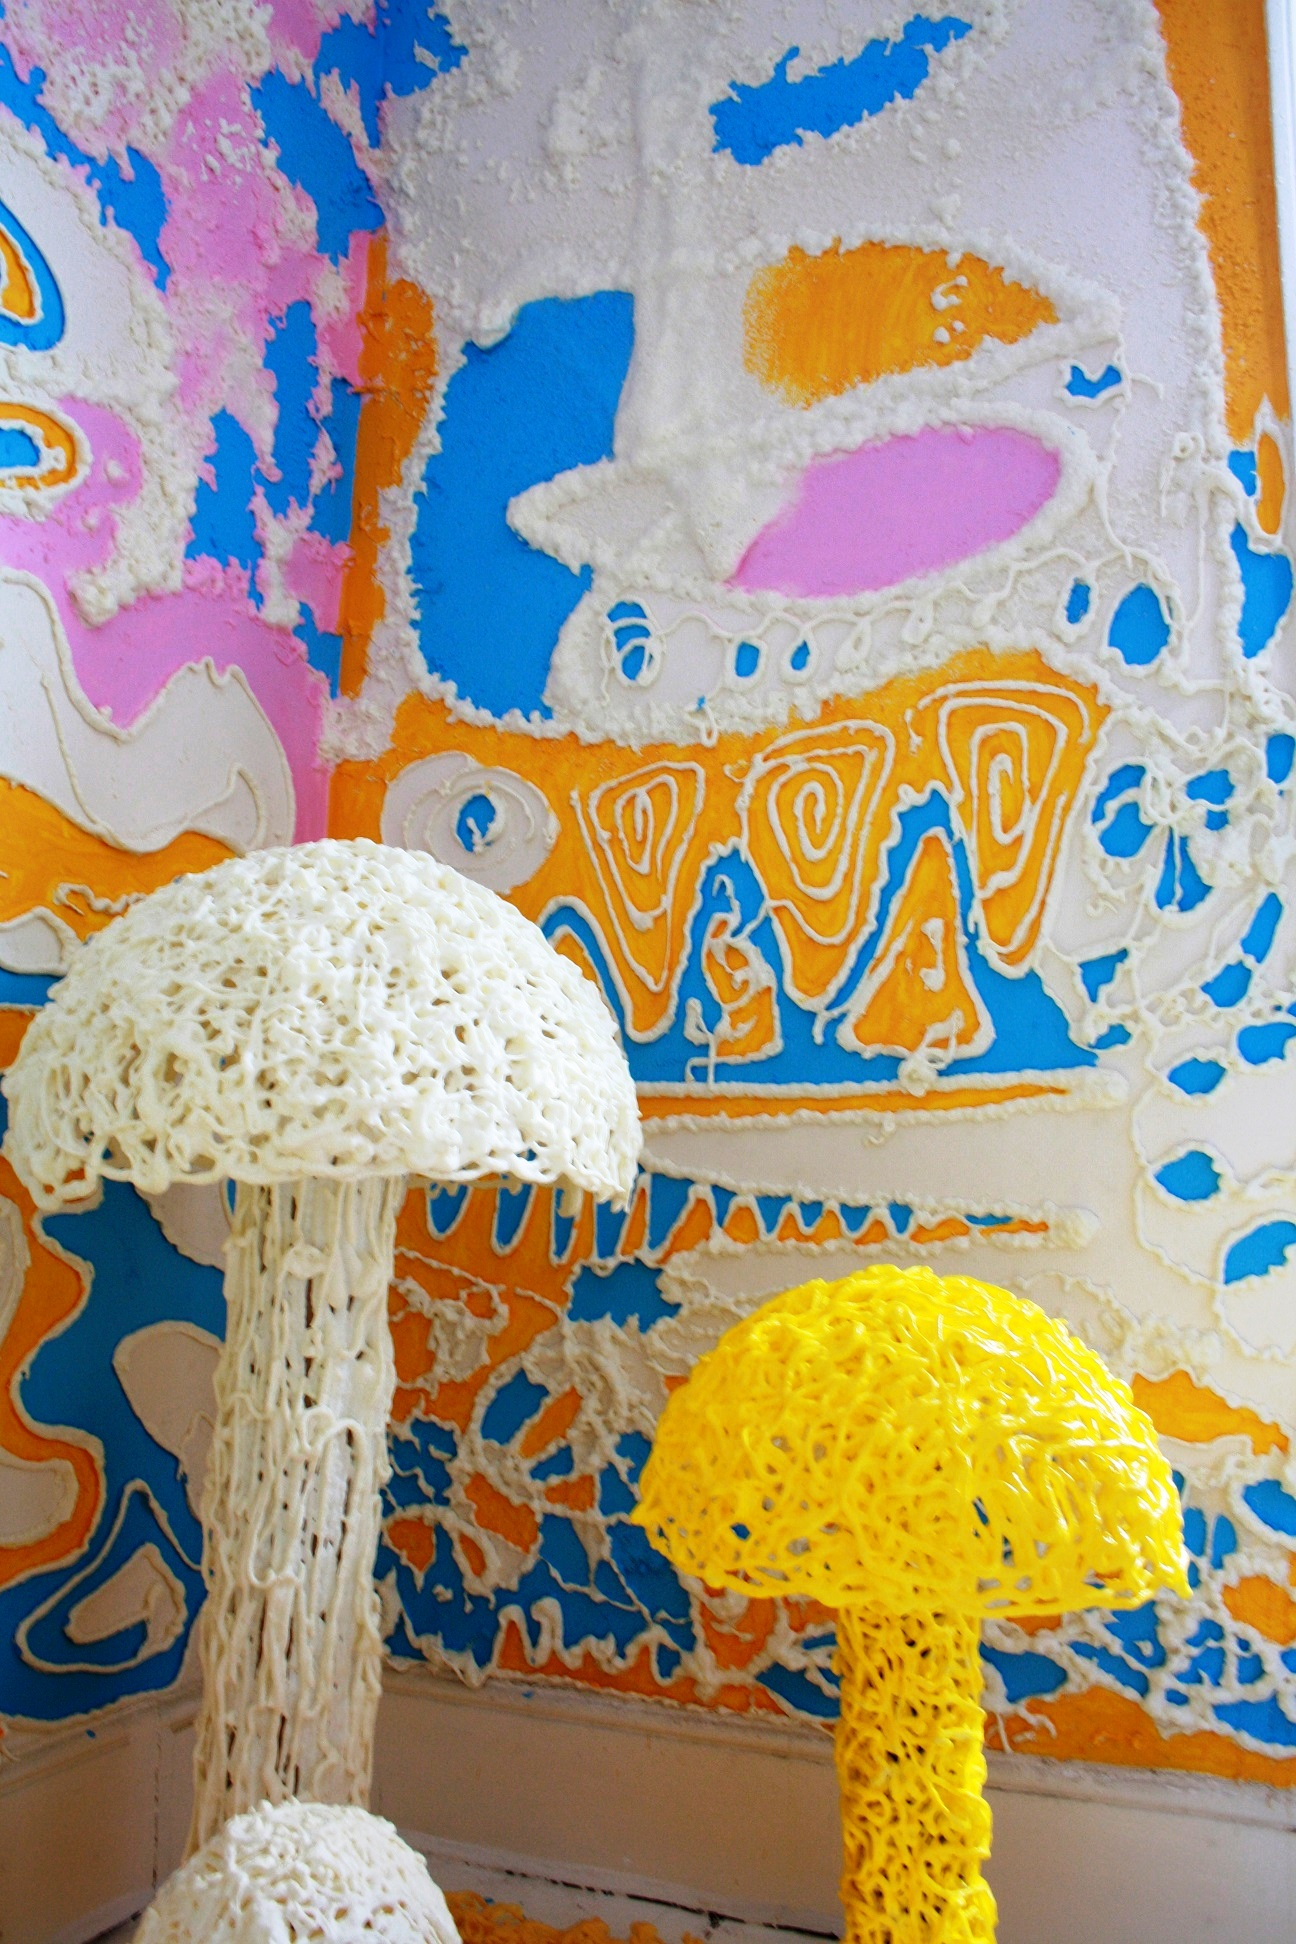 Christiaan Nagel Mushrooms cropped